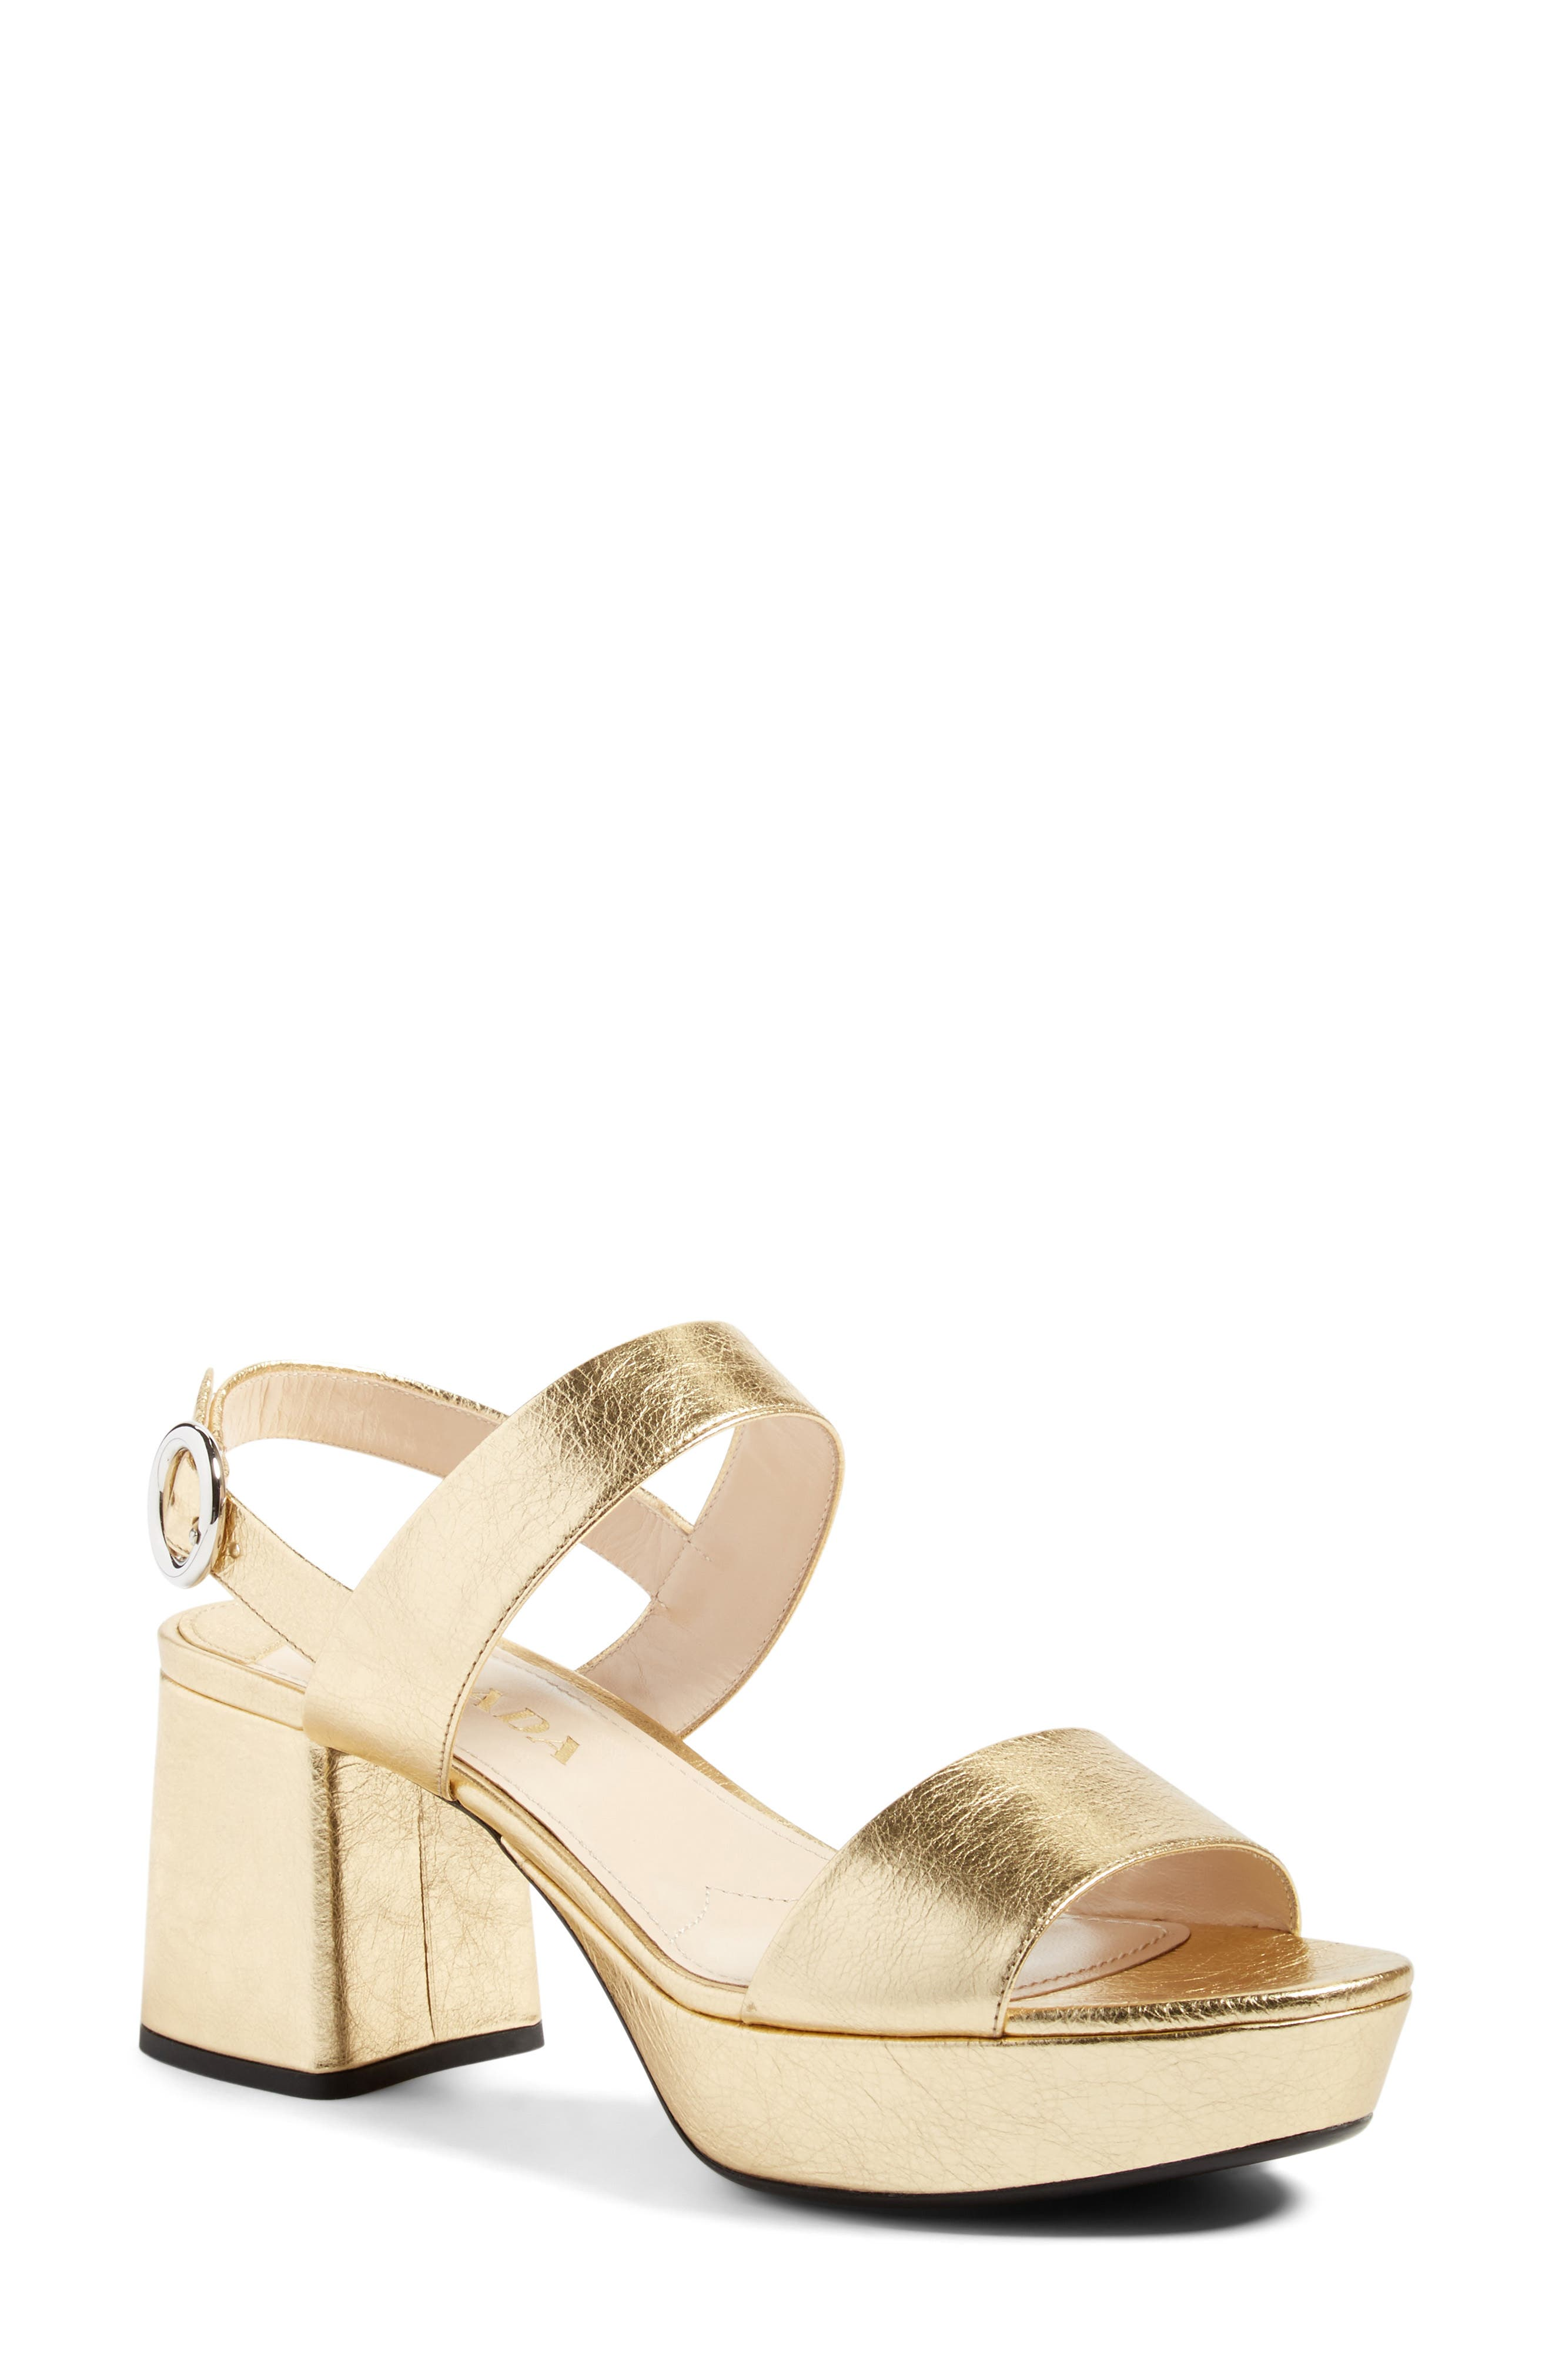 Slingback Platform Sandal,                             Alternate thumbnail 6, color,